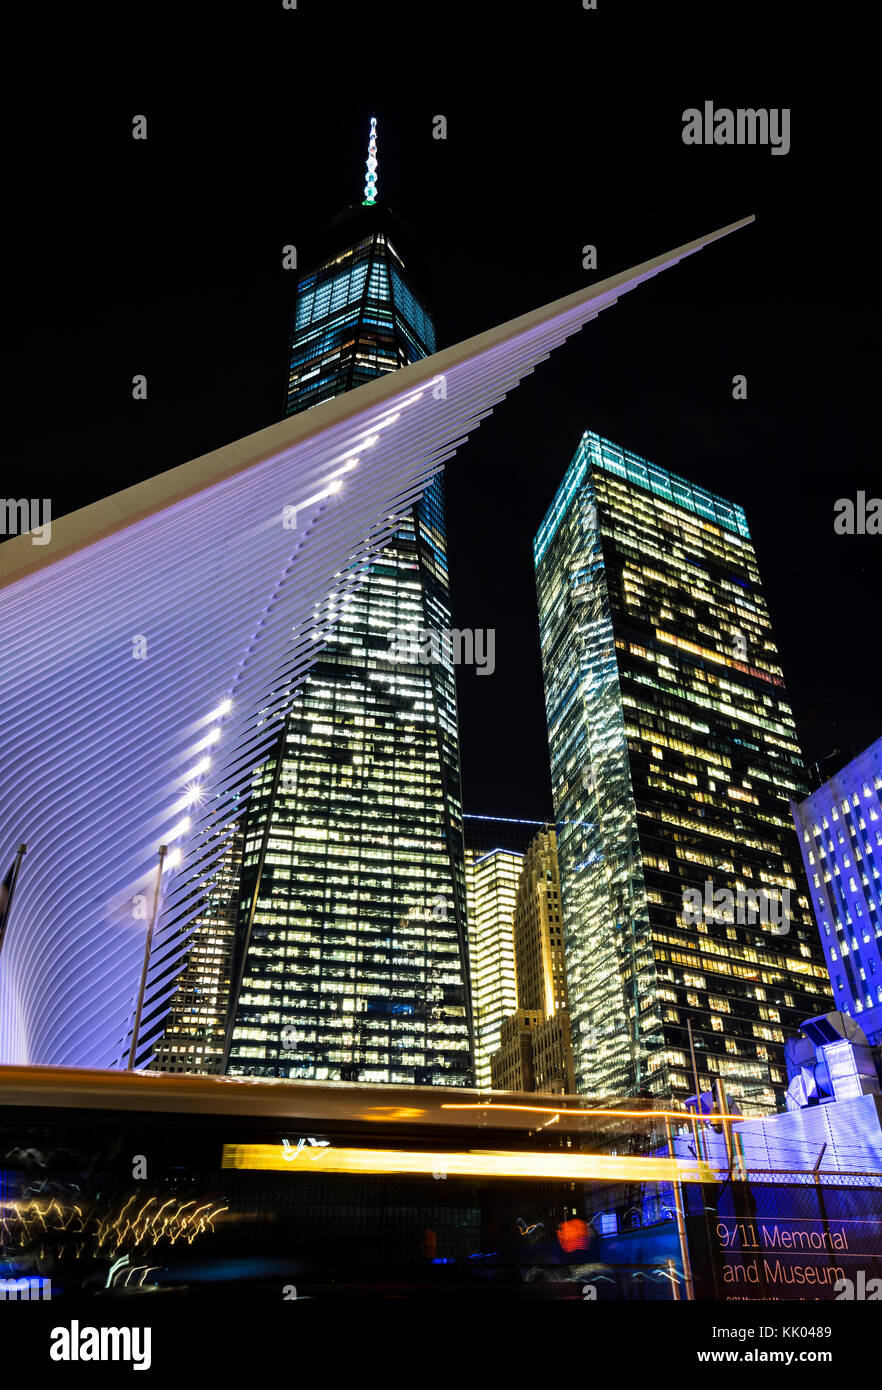 World Trade Center Transportation Hub by Santiago Calatrava and building of One World Trade Center on the back, - Stock Image